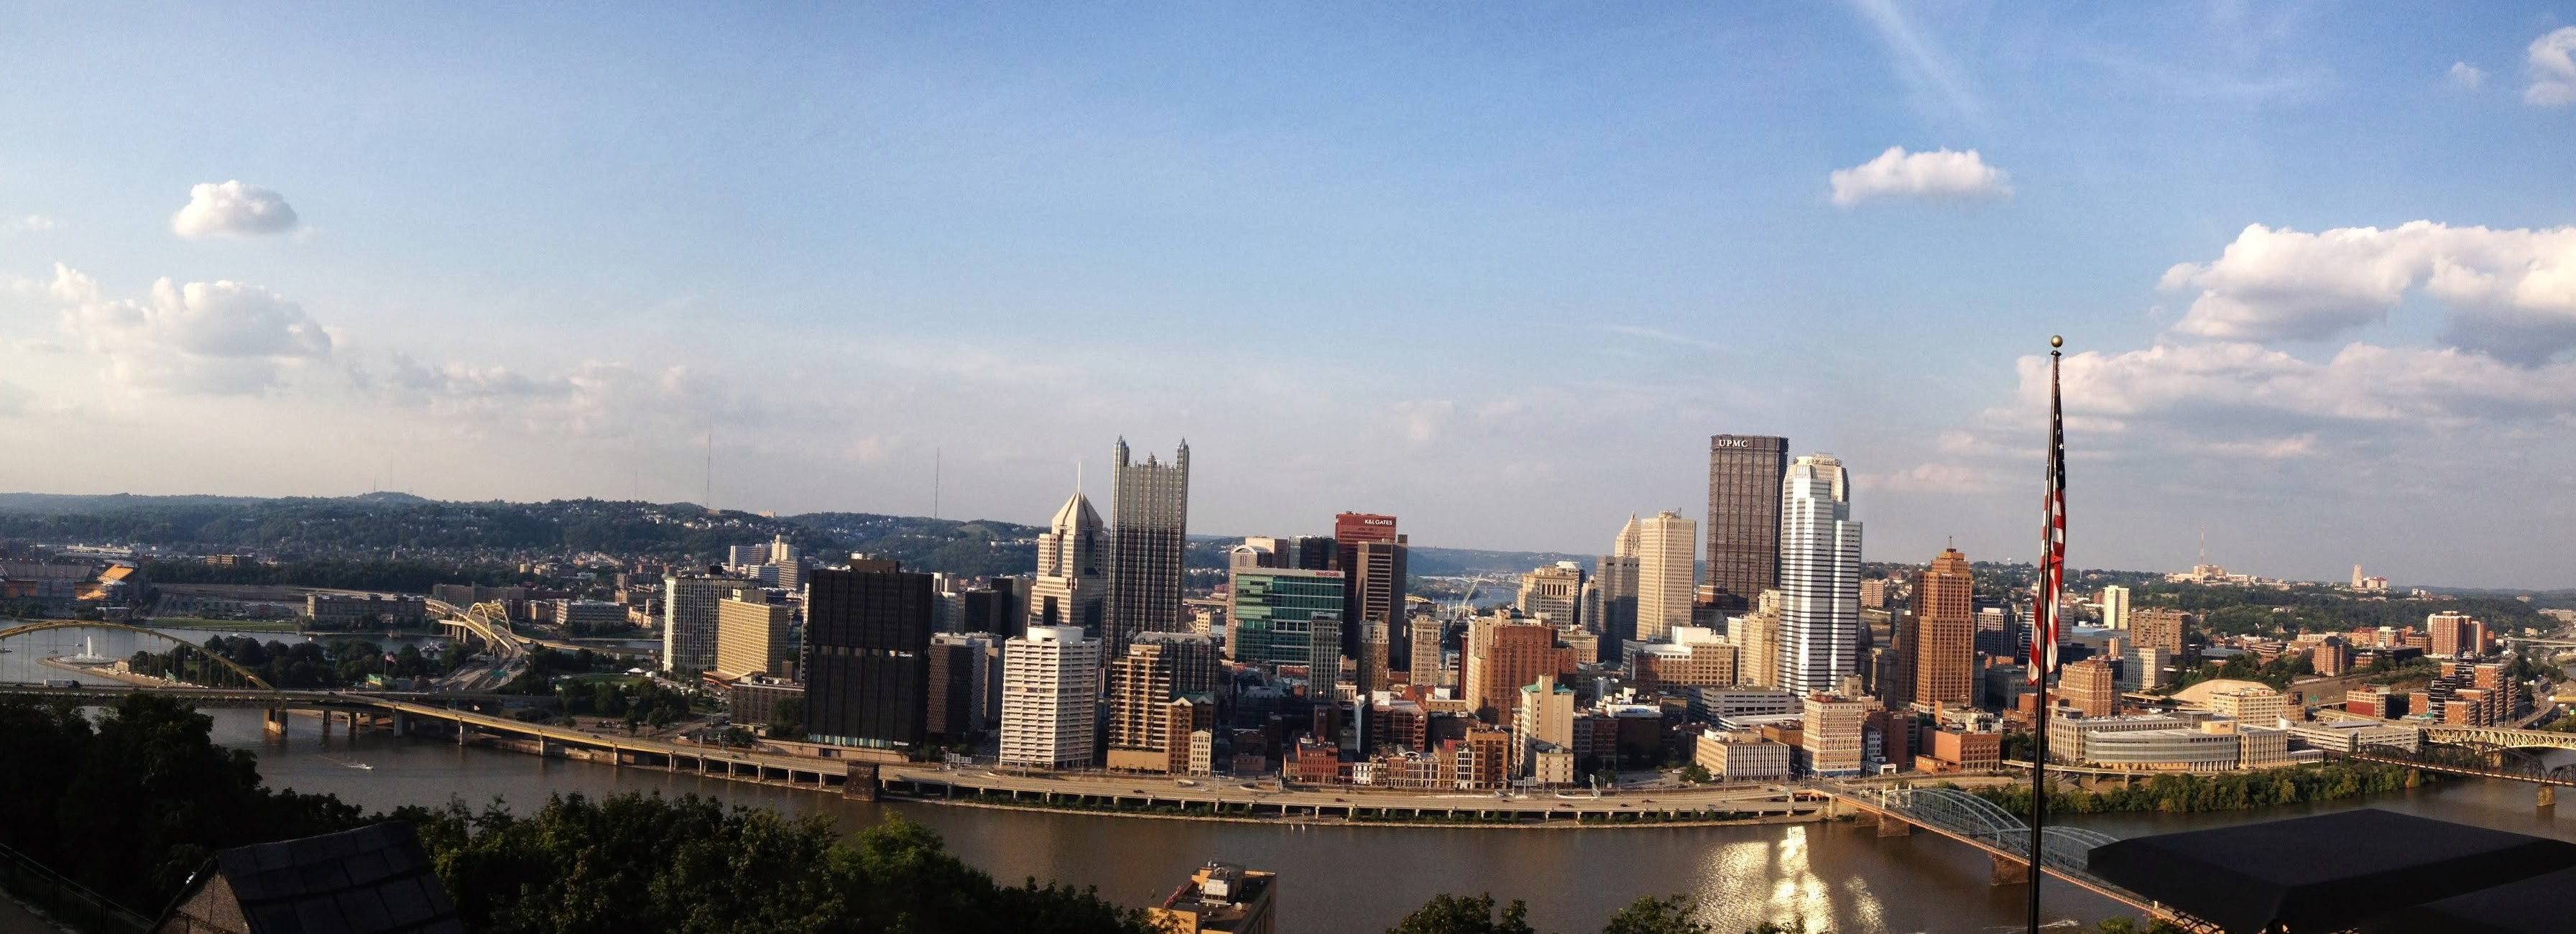 Image of downtown Pittsburgh